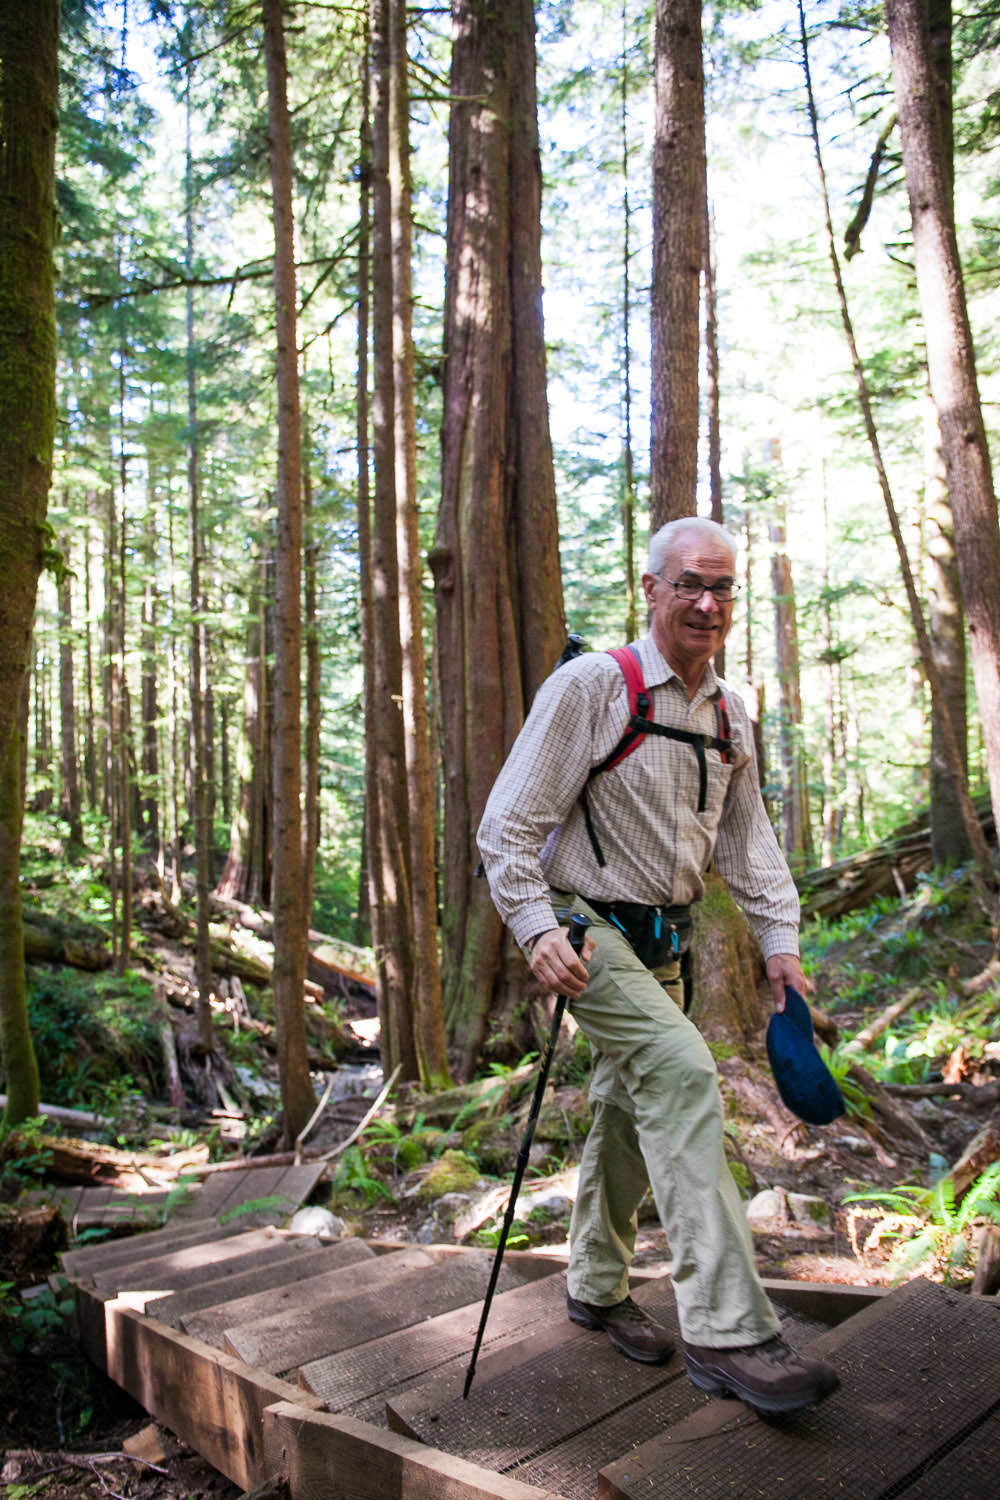 older-man-hiking-trails-avatar-grove.jpg